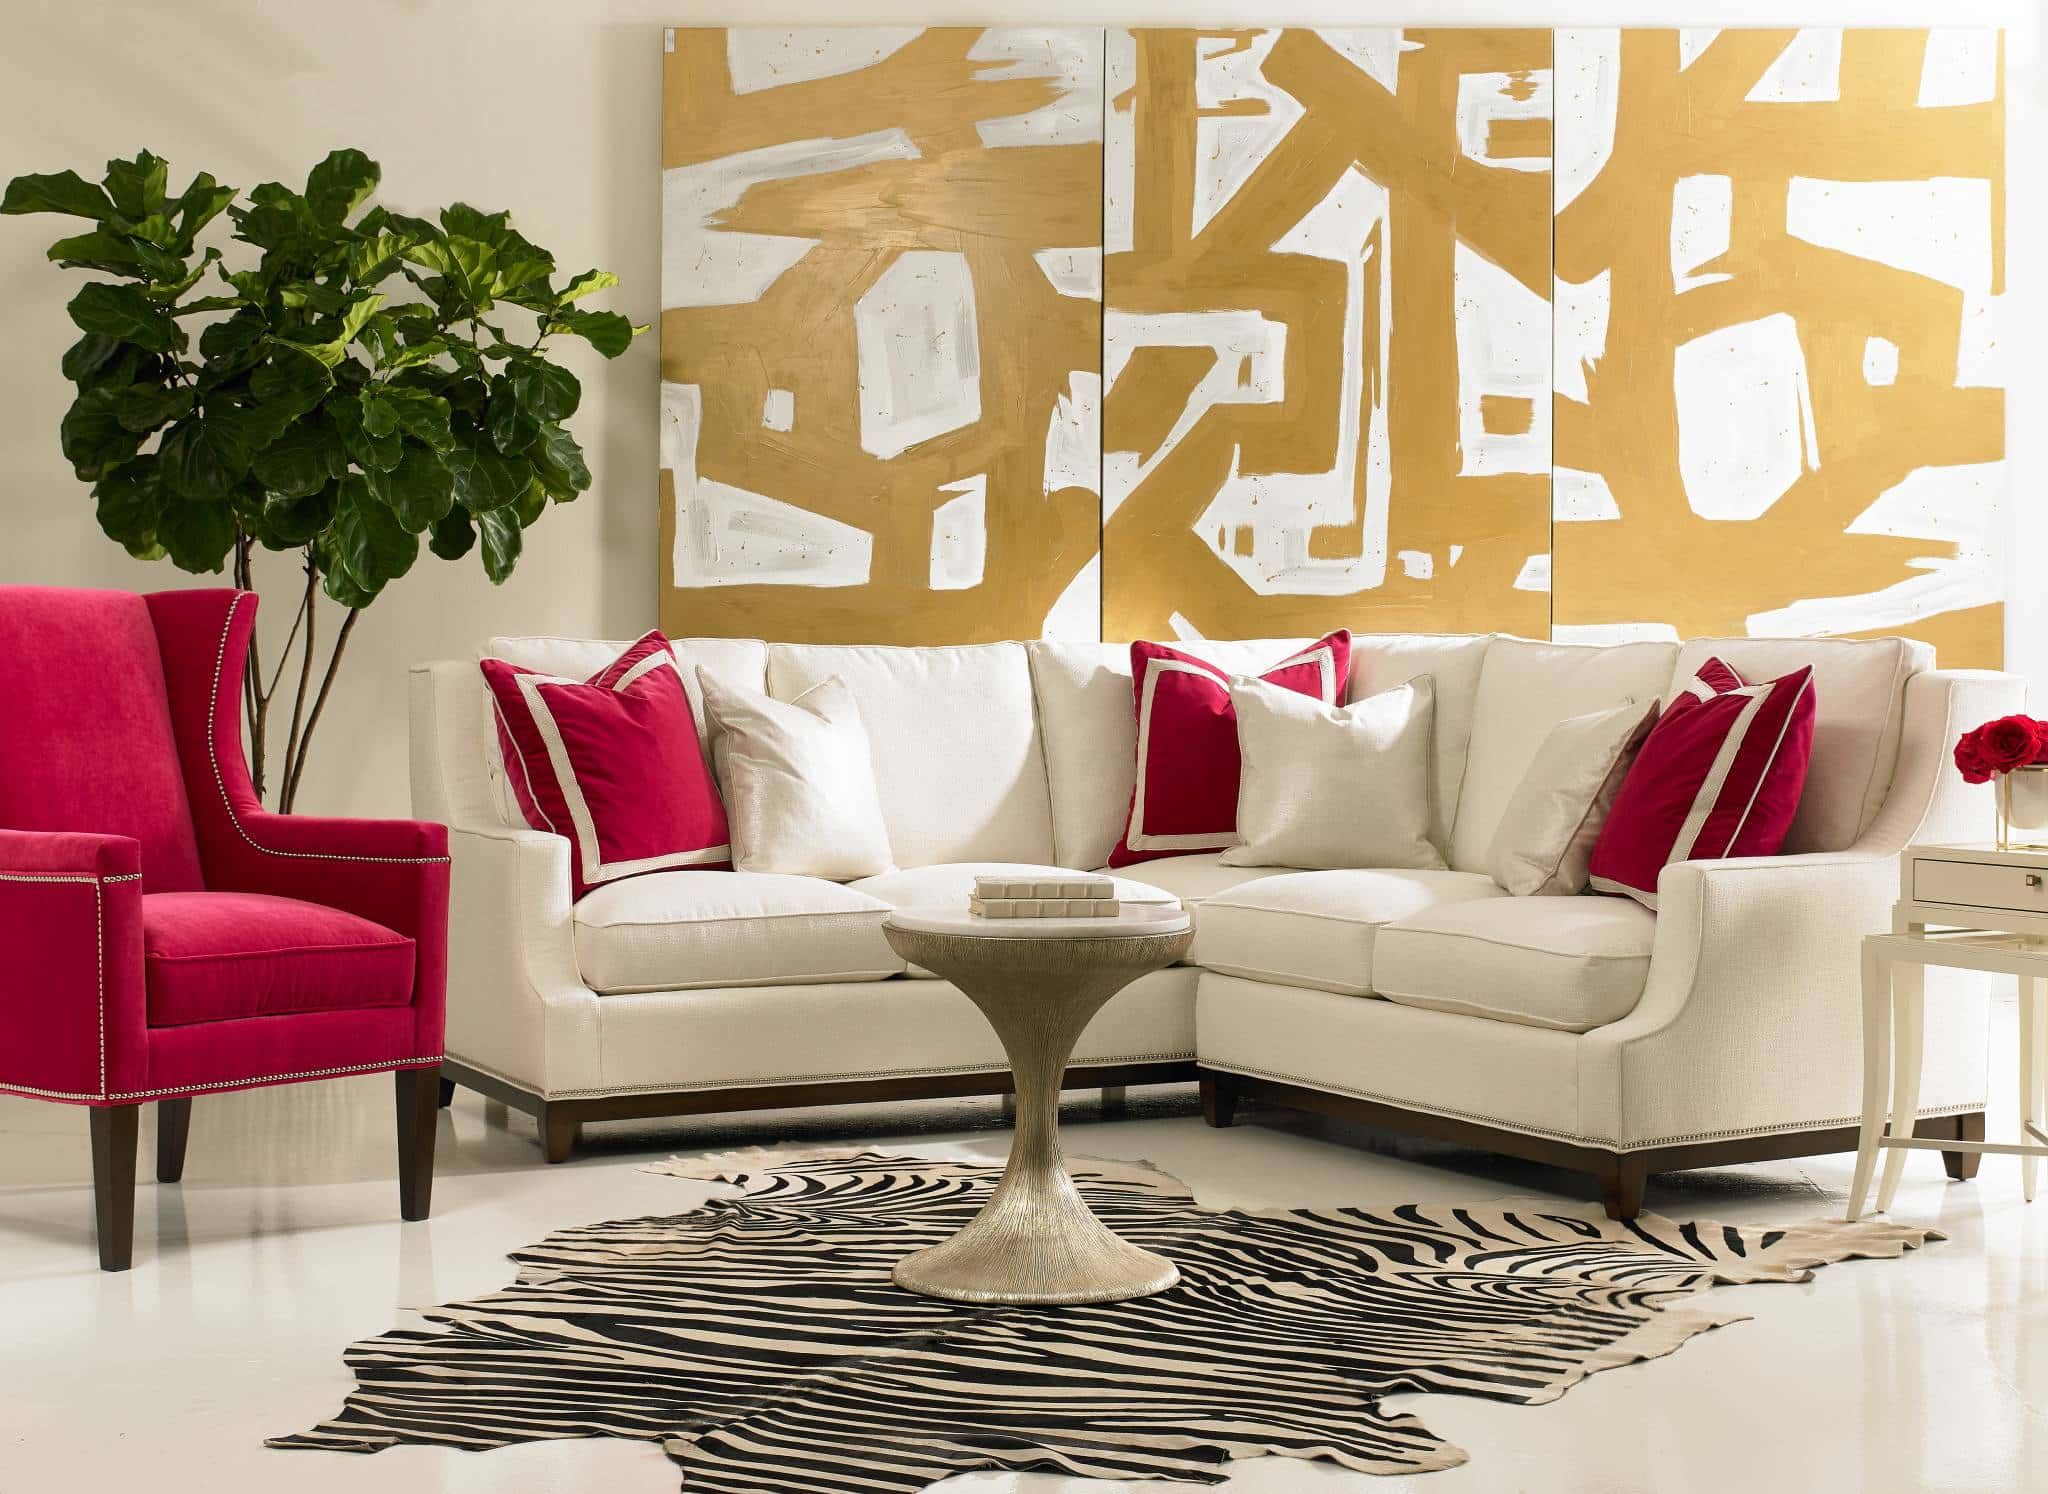 Choose the right sectional for your space